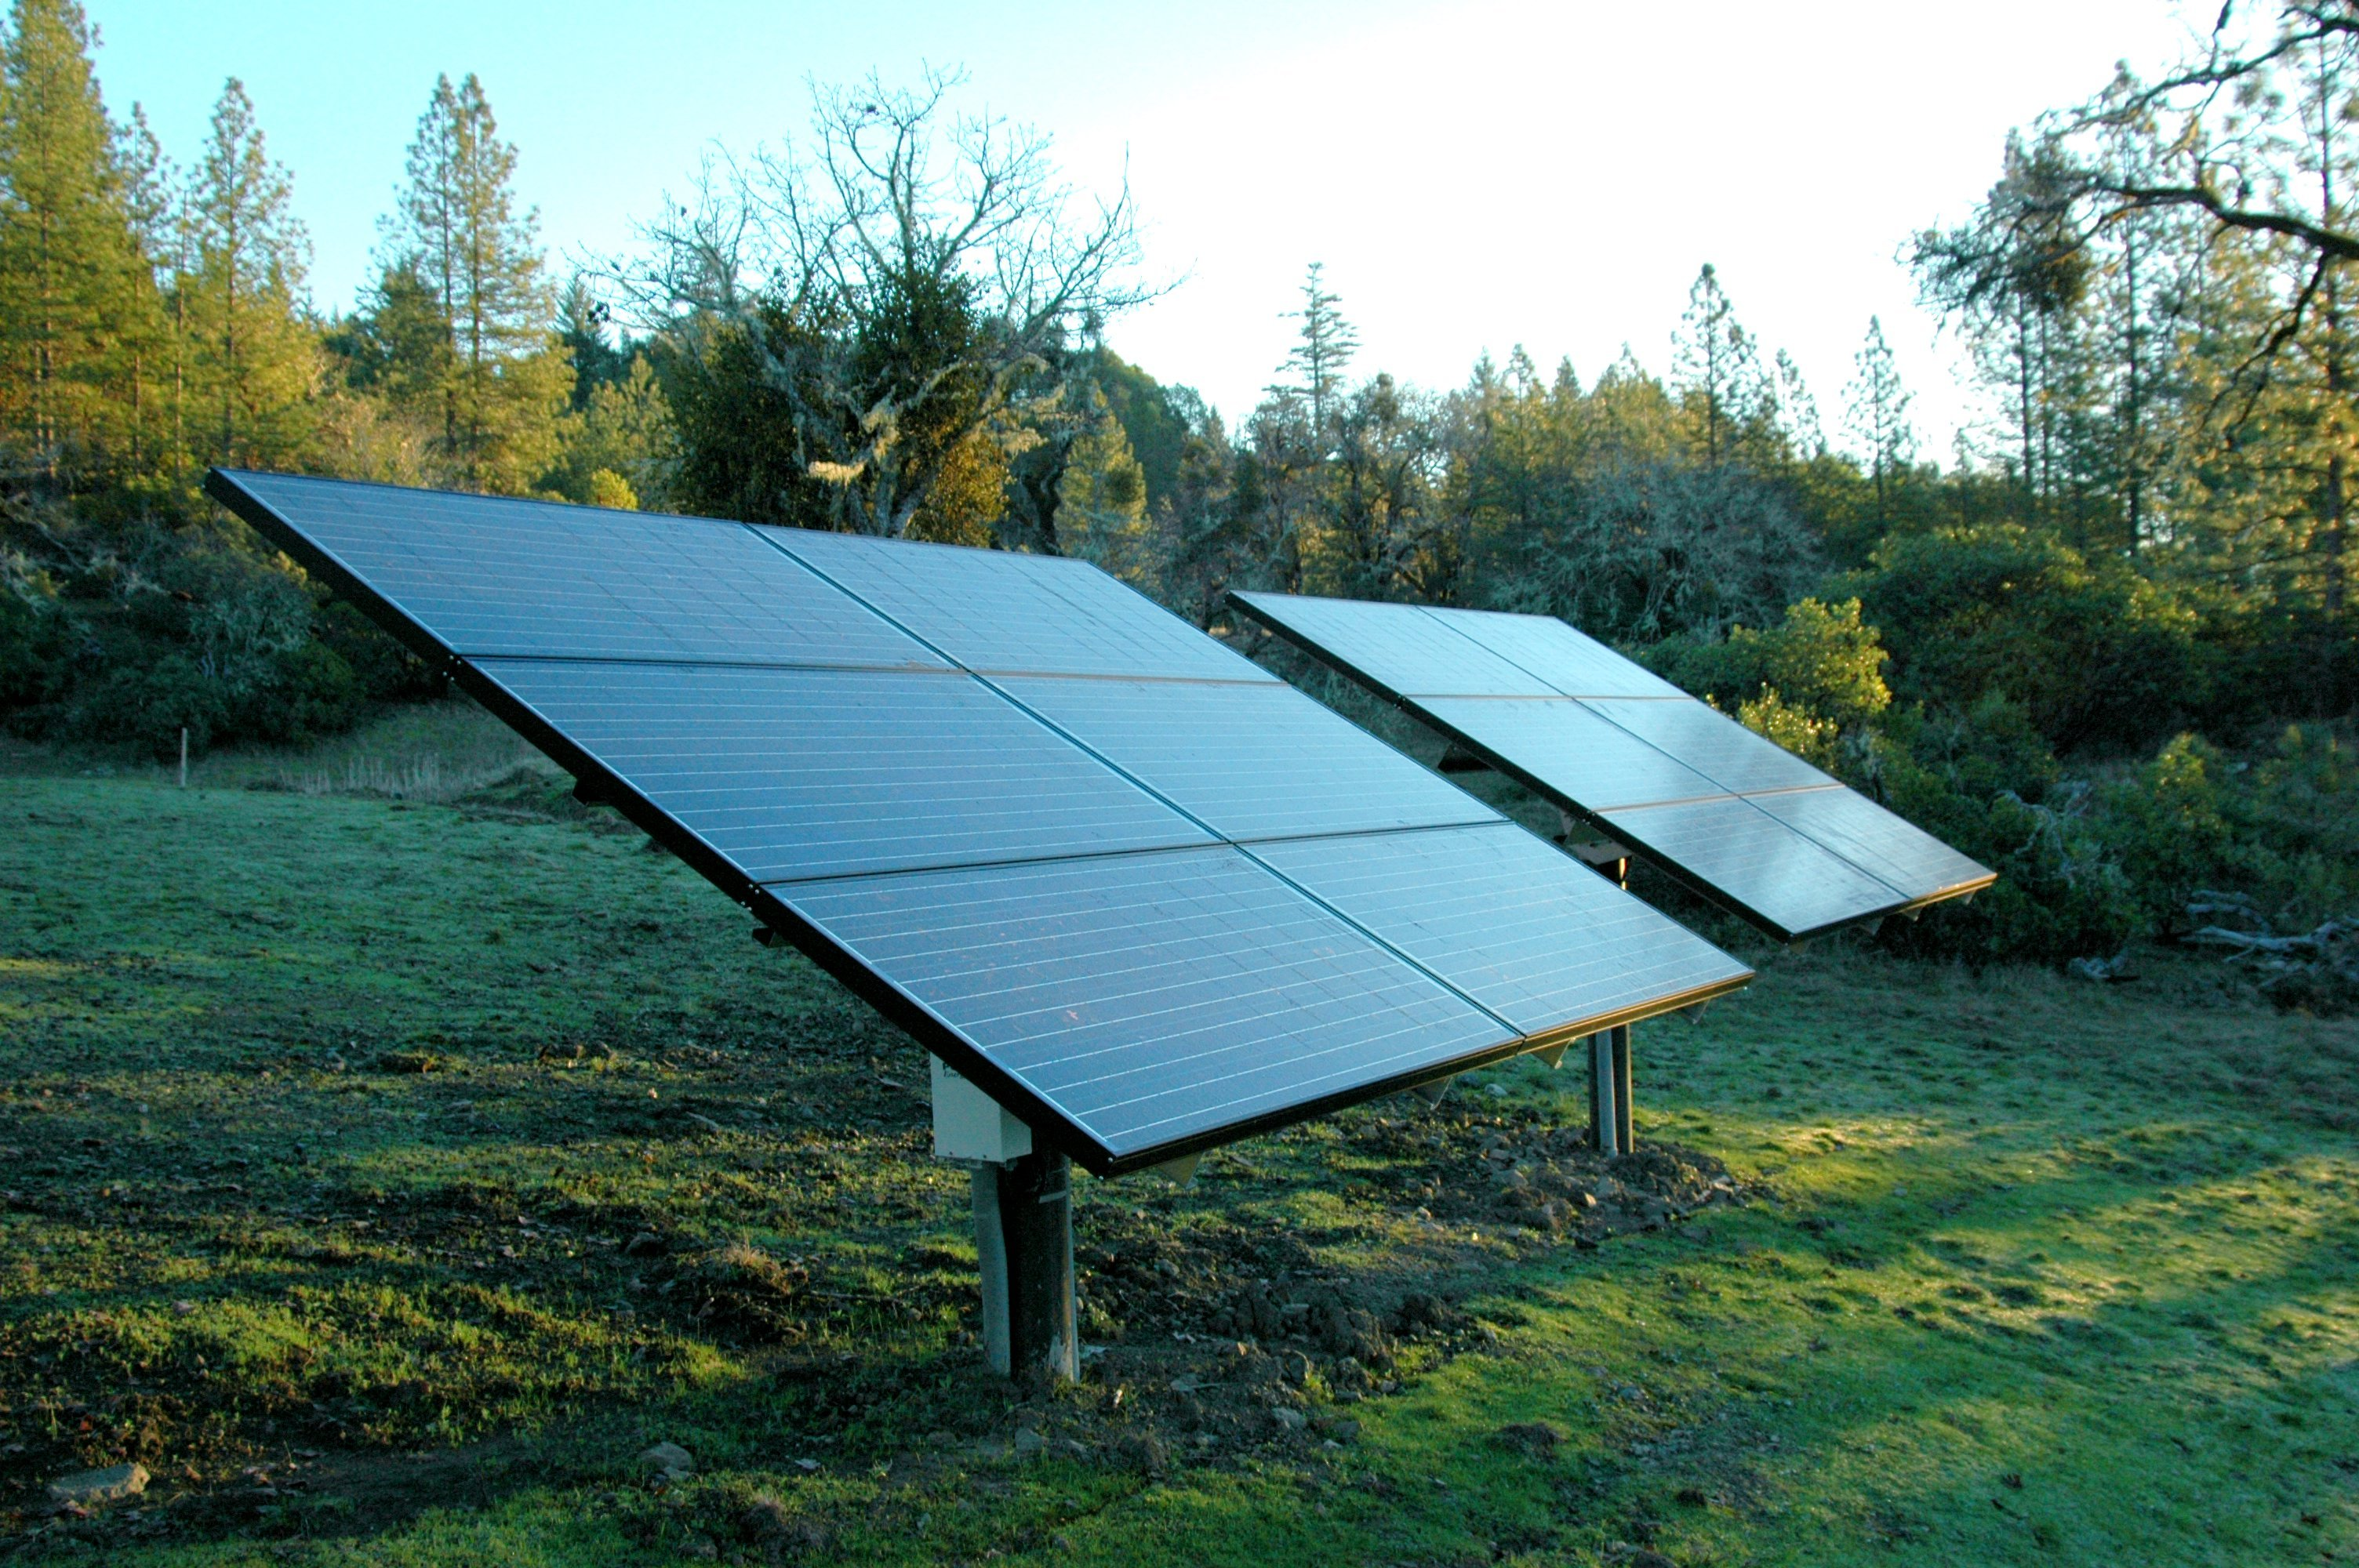 Solar modules on Post mounts